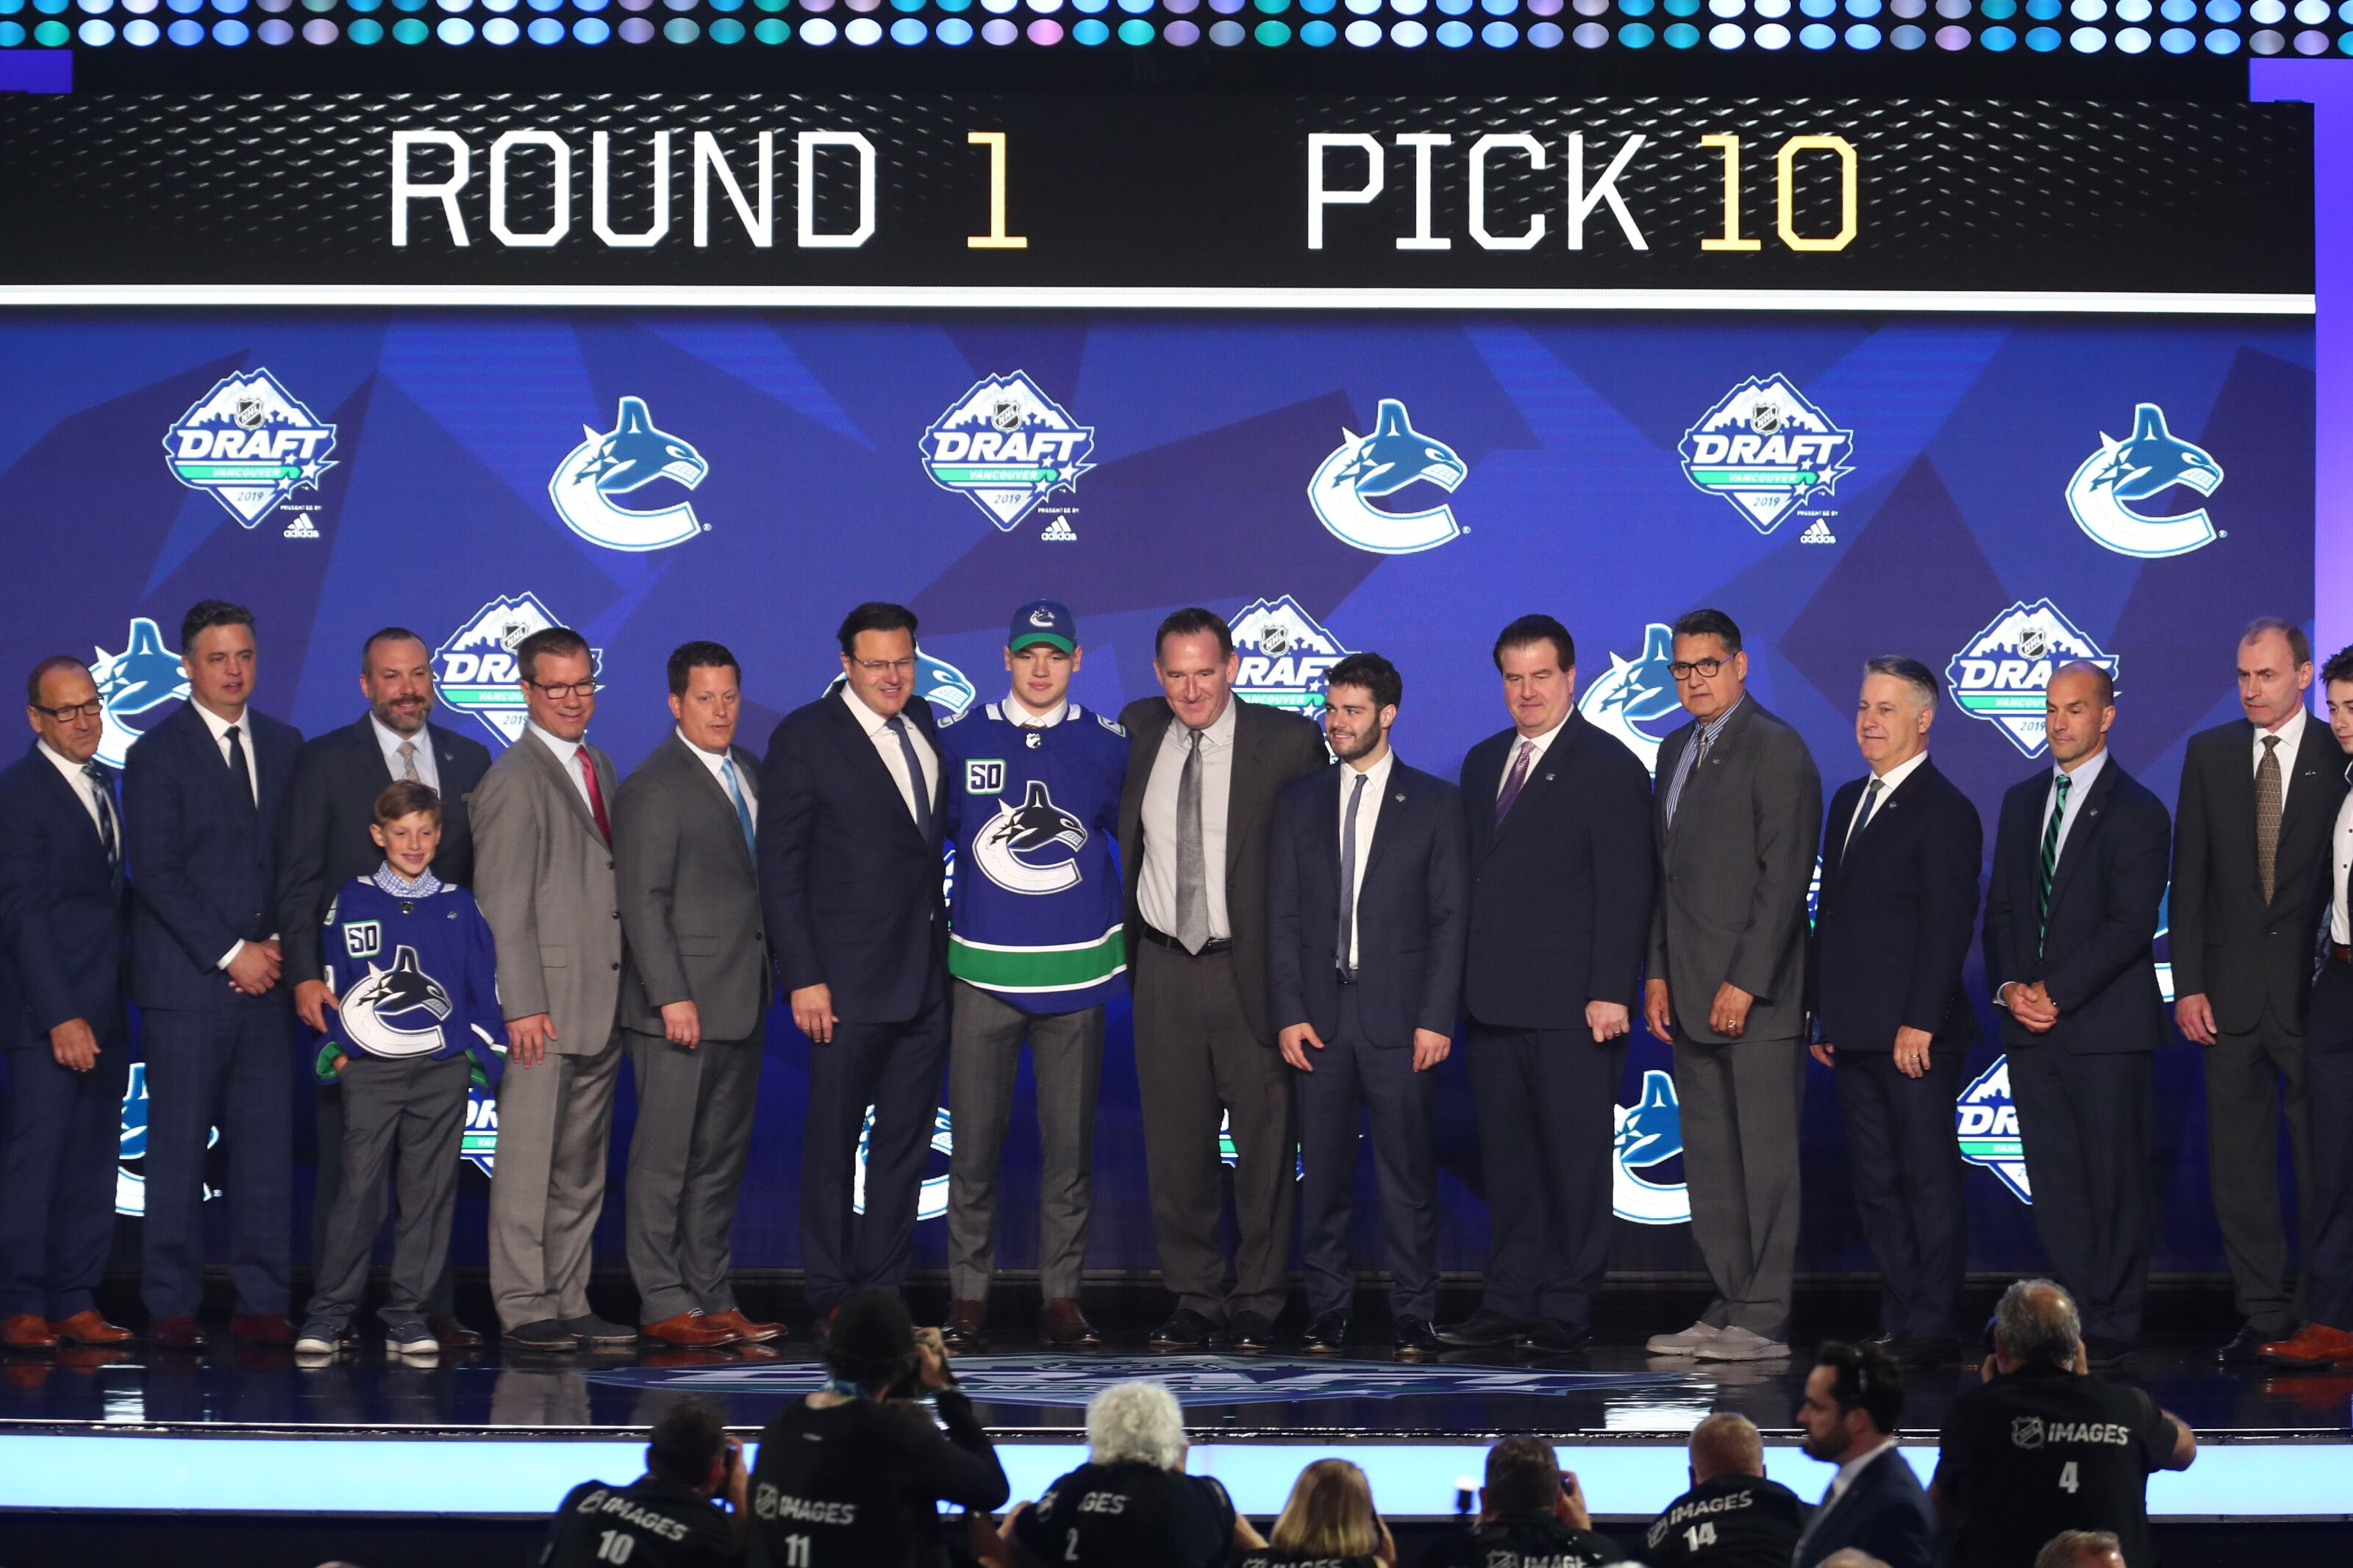 Vancouver Canucks: Farm system ranked fifth best by The Athletic